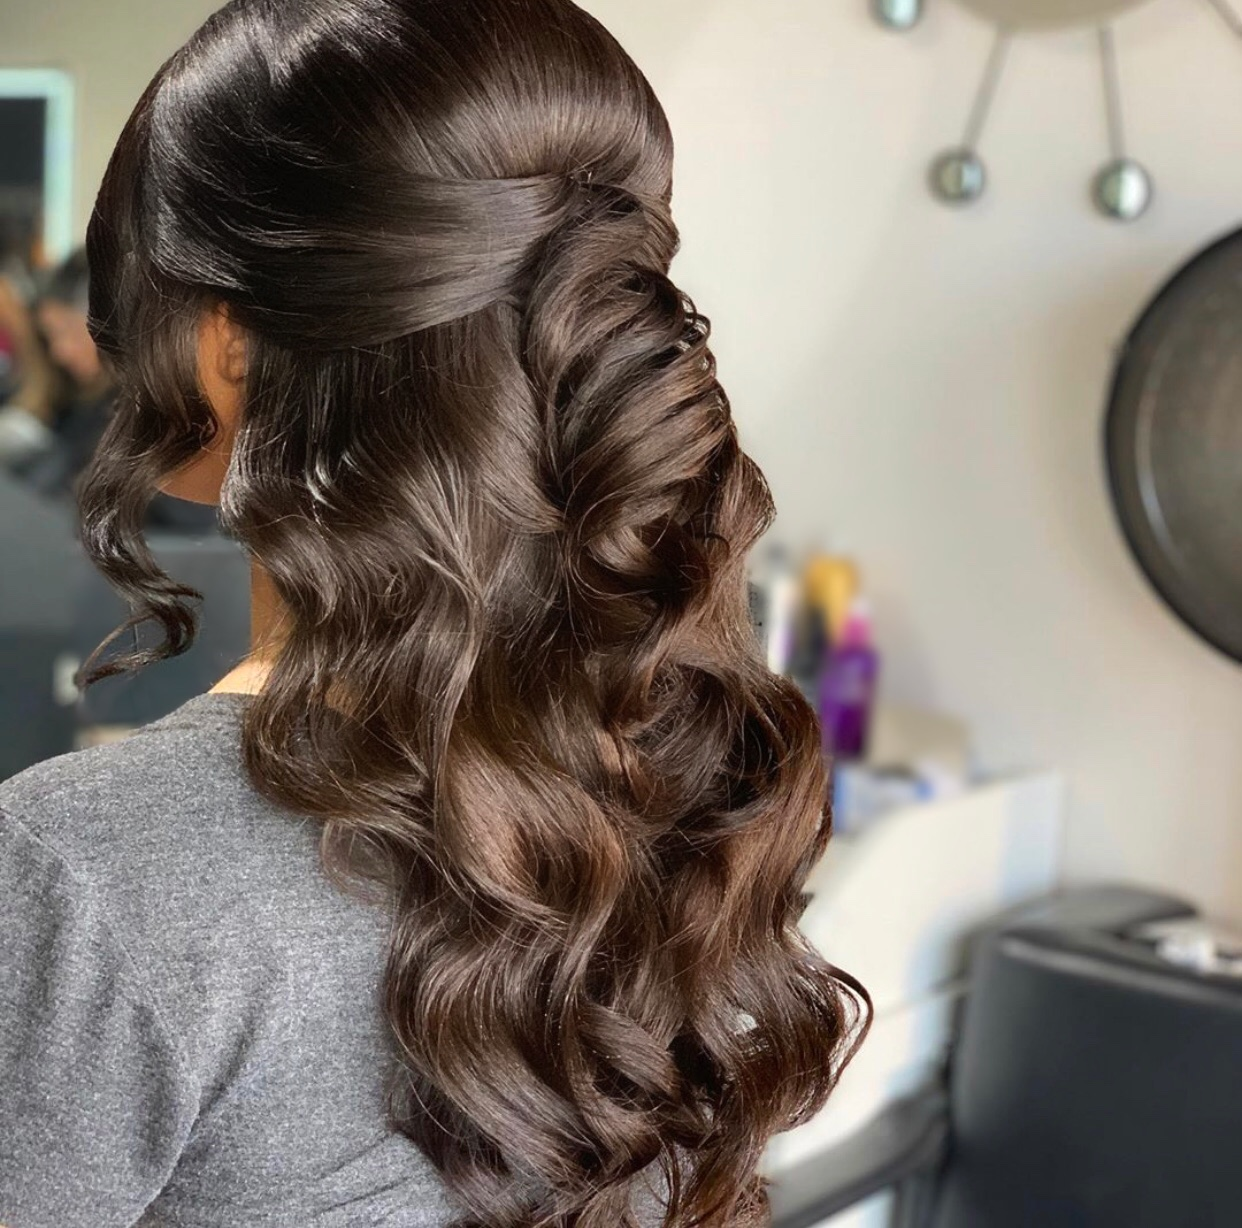 Formal engagement hair by Helana